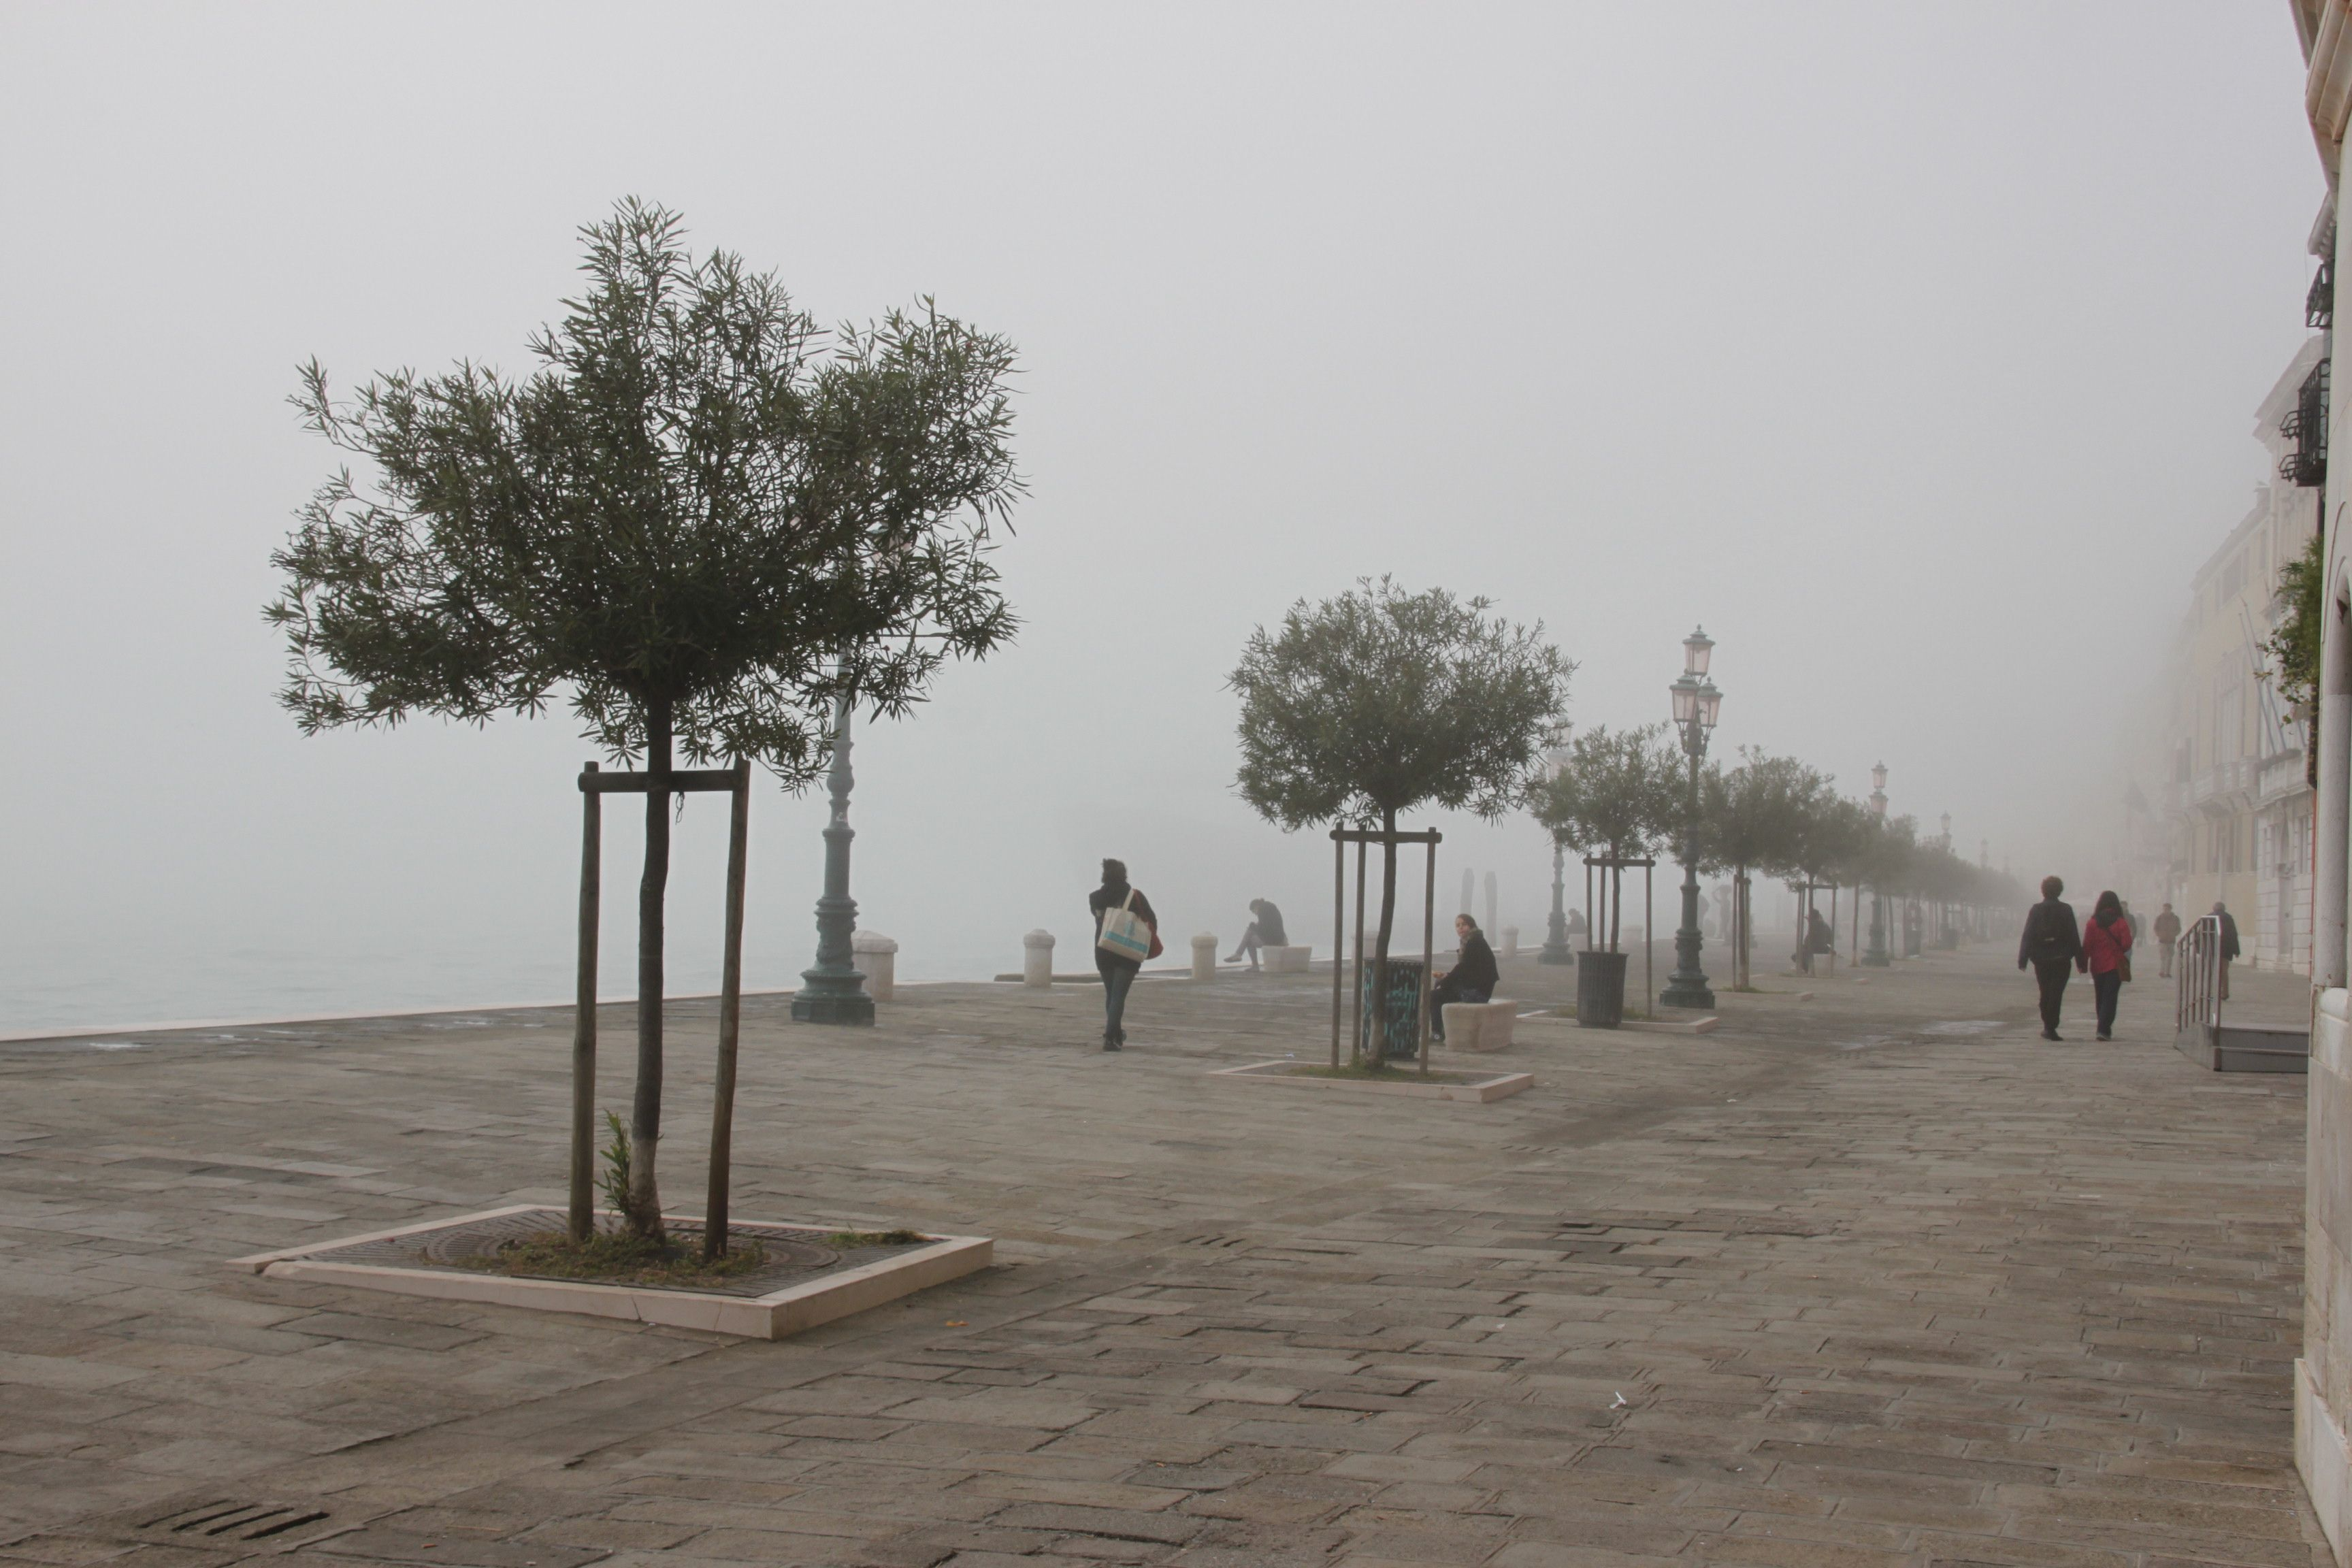 Giudecca island has completely disappeared from view from the Zattere